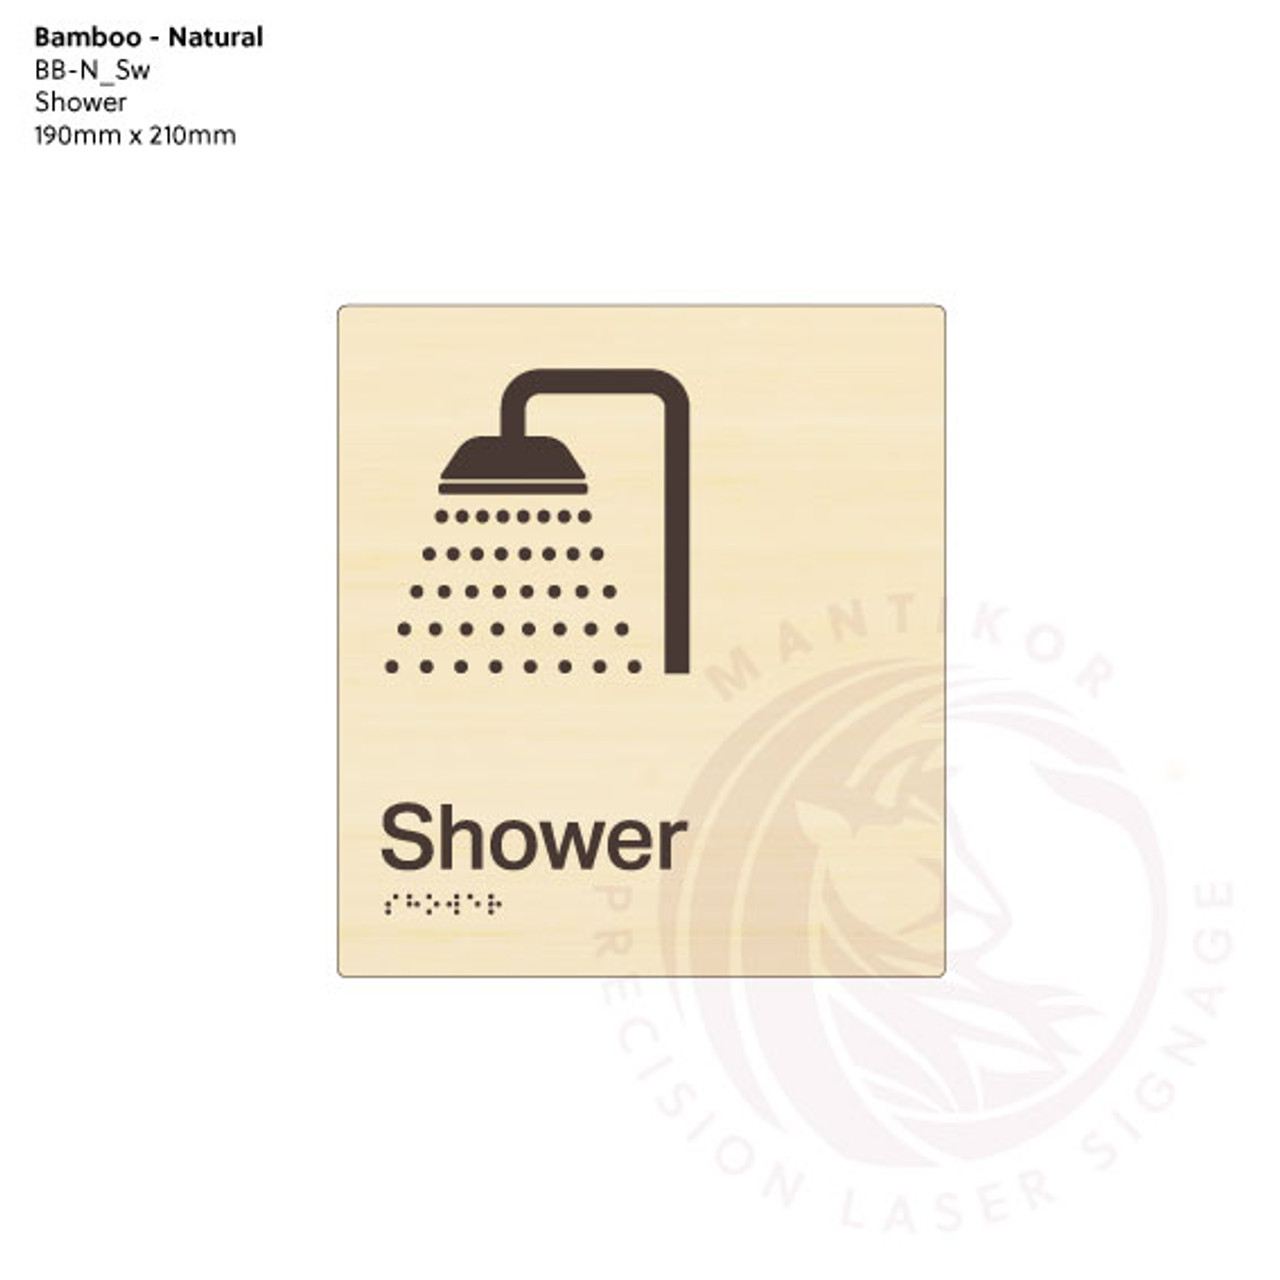 Natural Bamboo Tactile Braille Signs - Shower